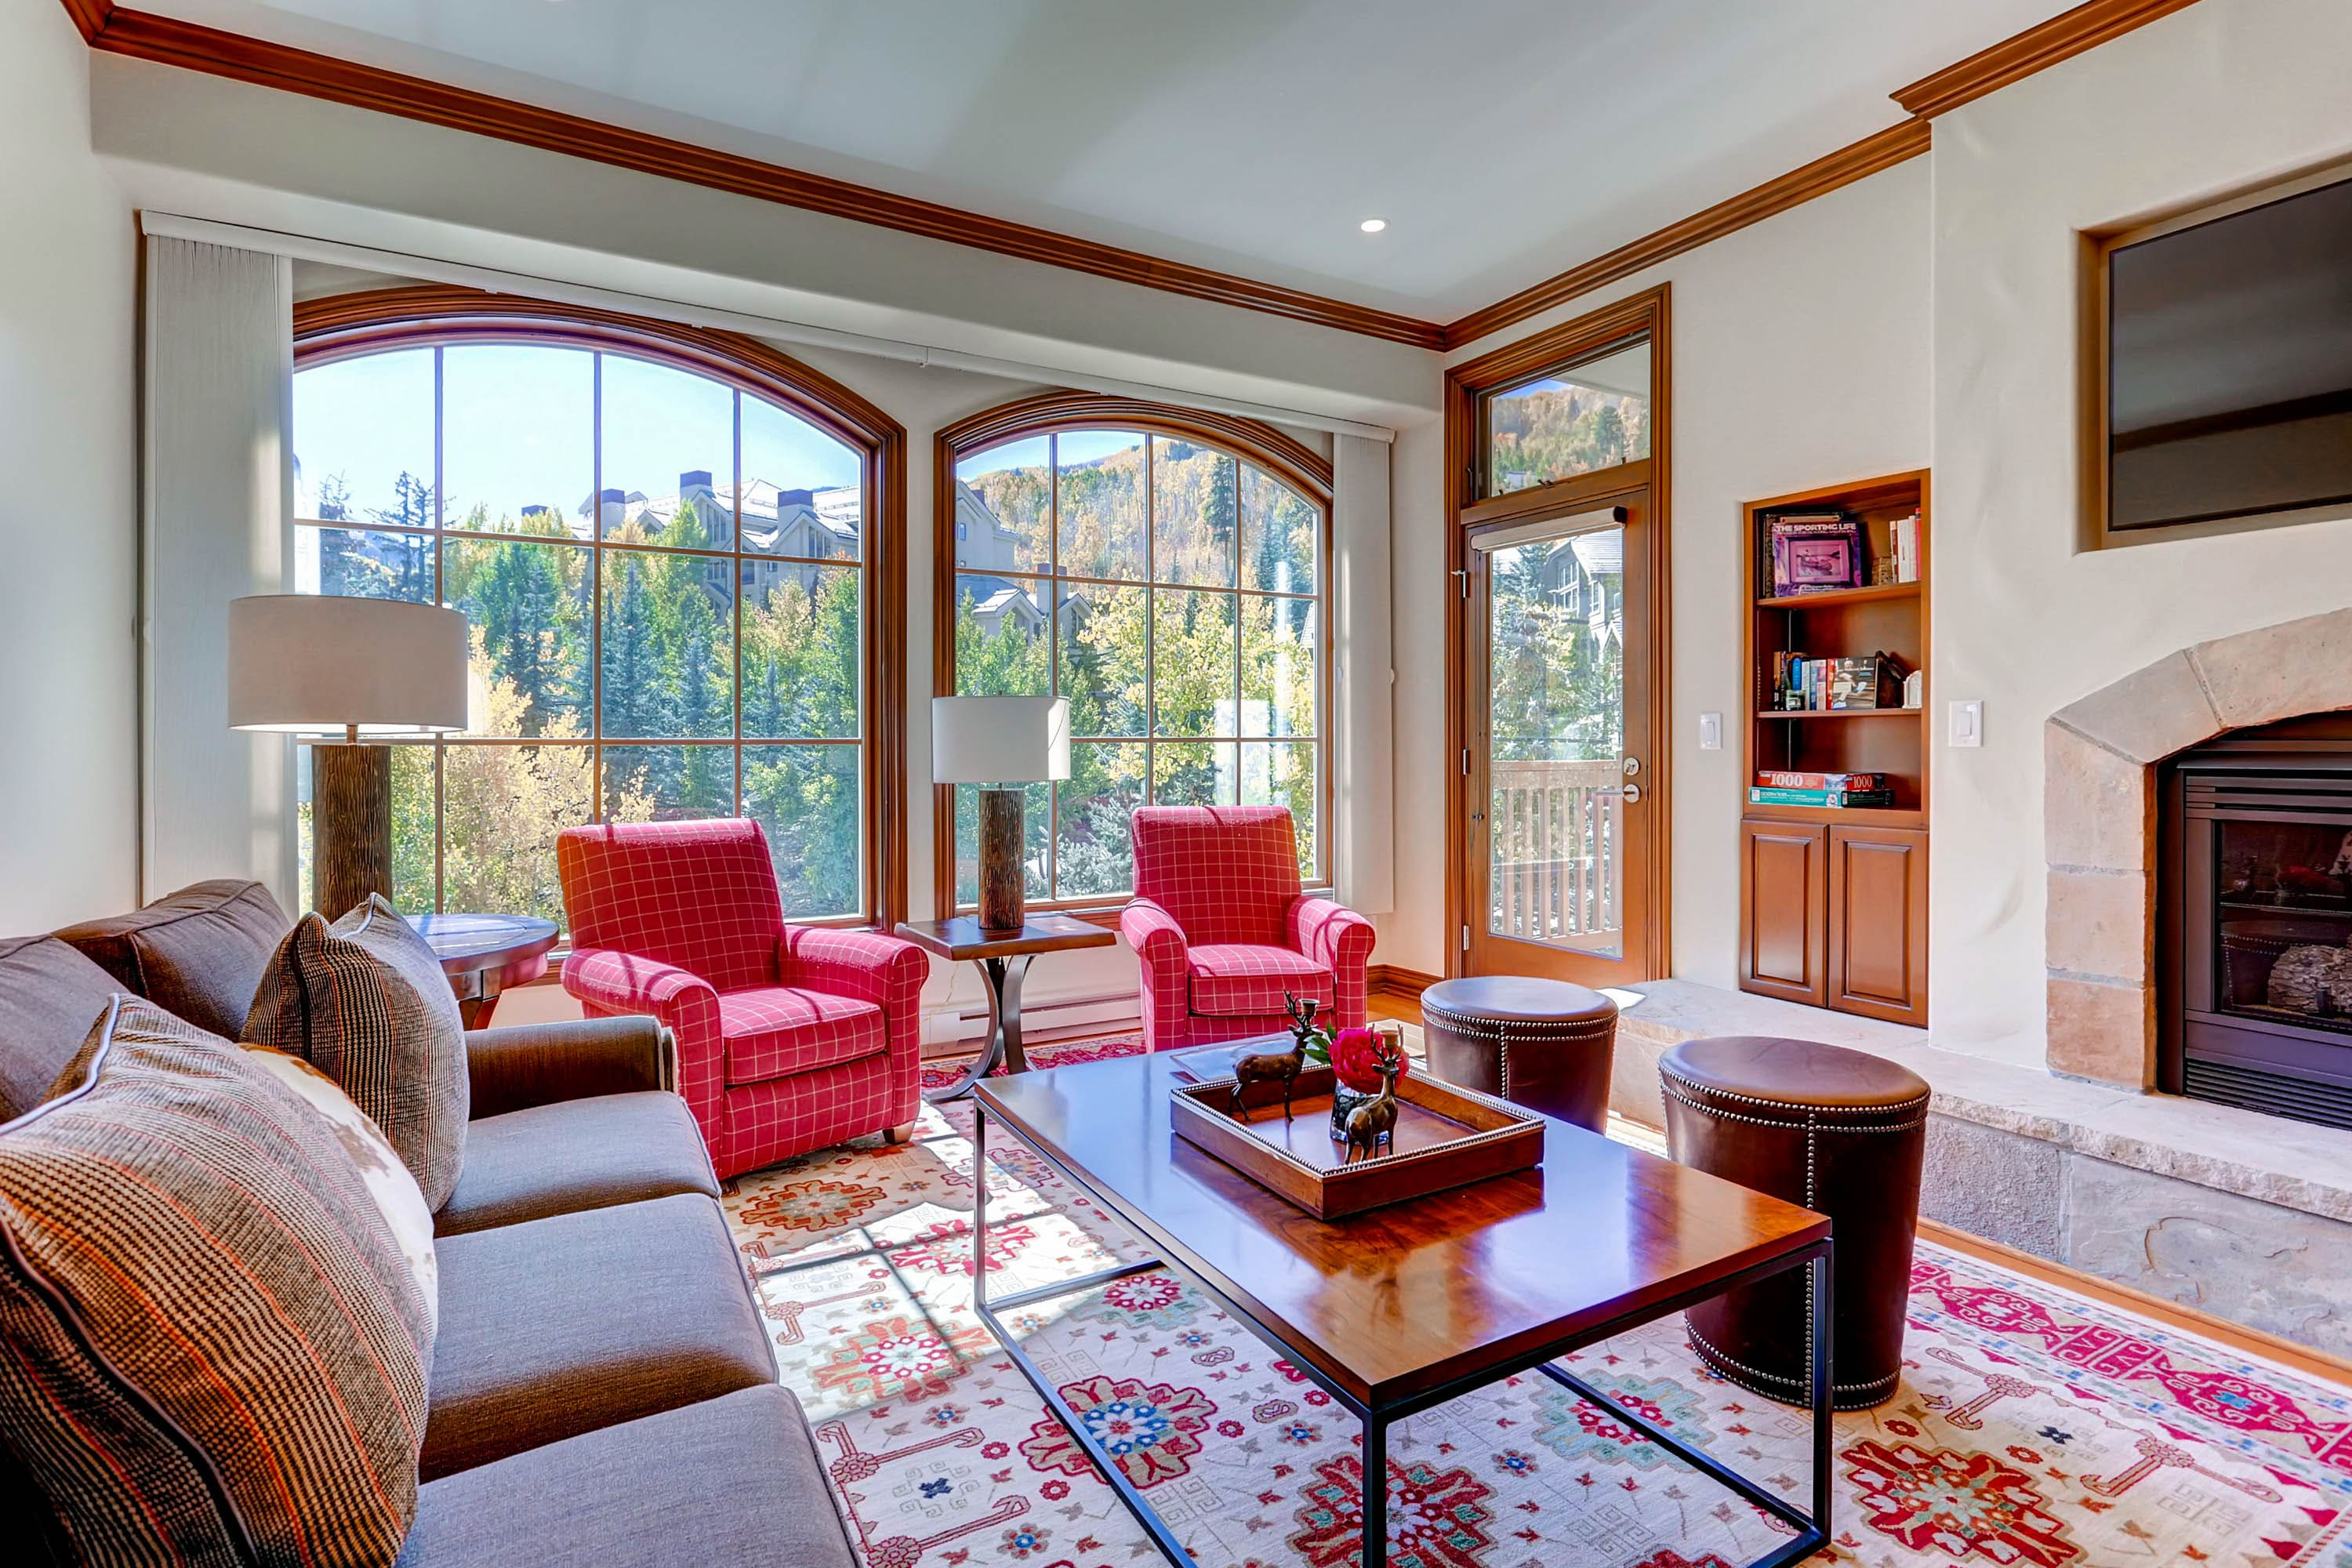 Property Image 2 - Sophisticated Light Filled Condo in Beaver Creek